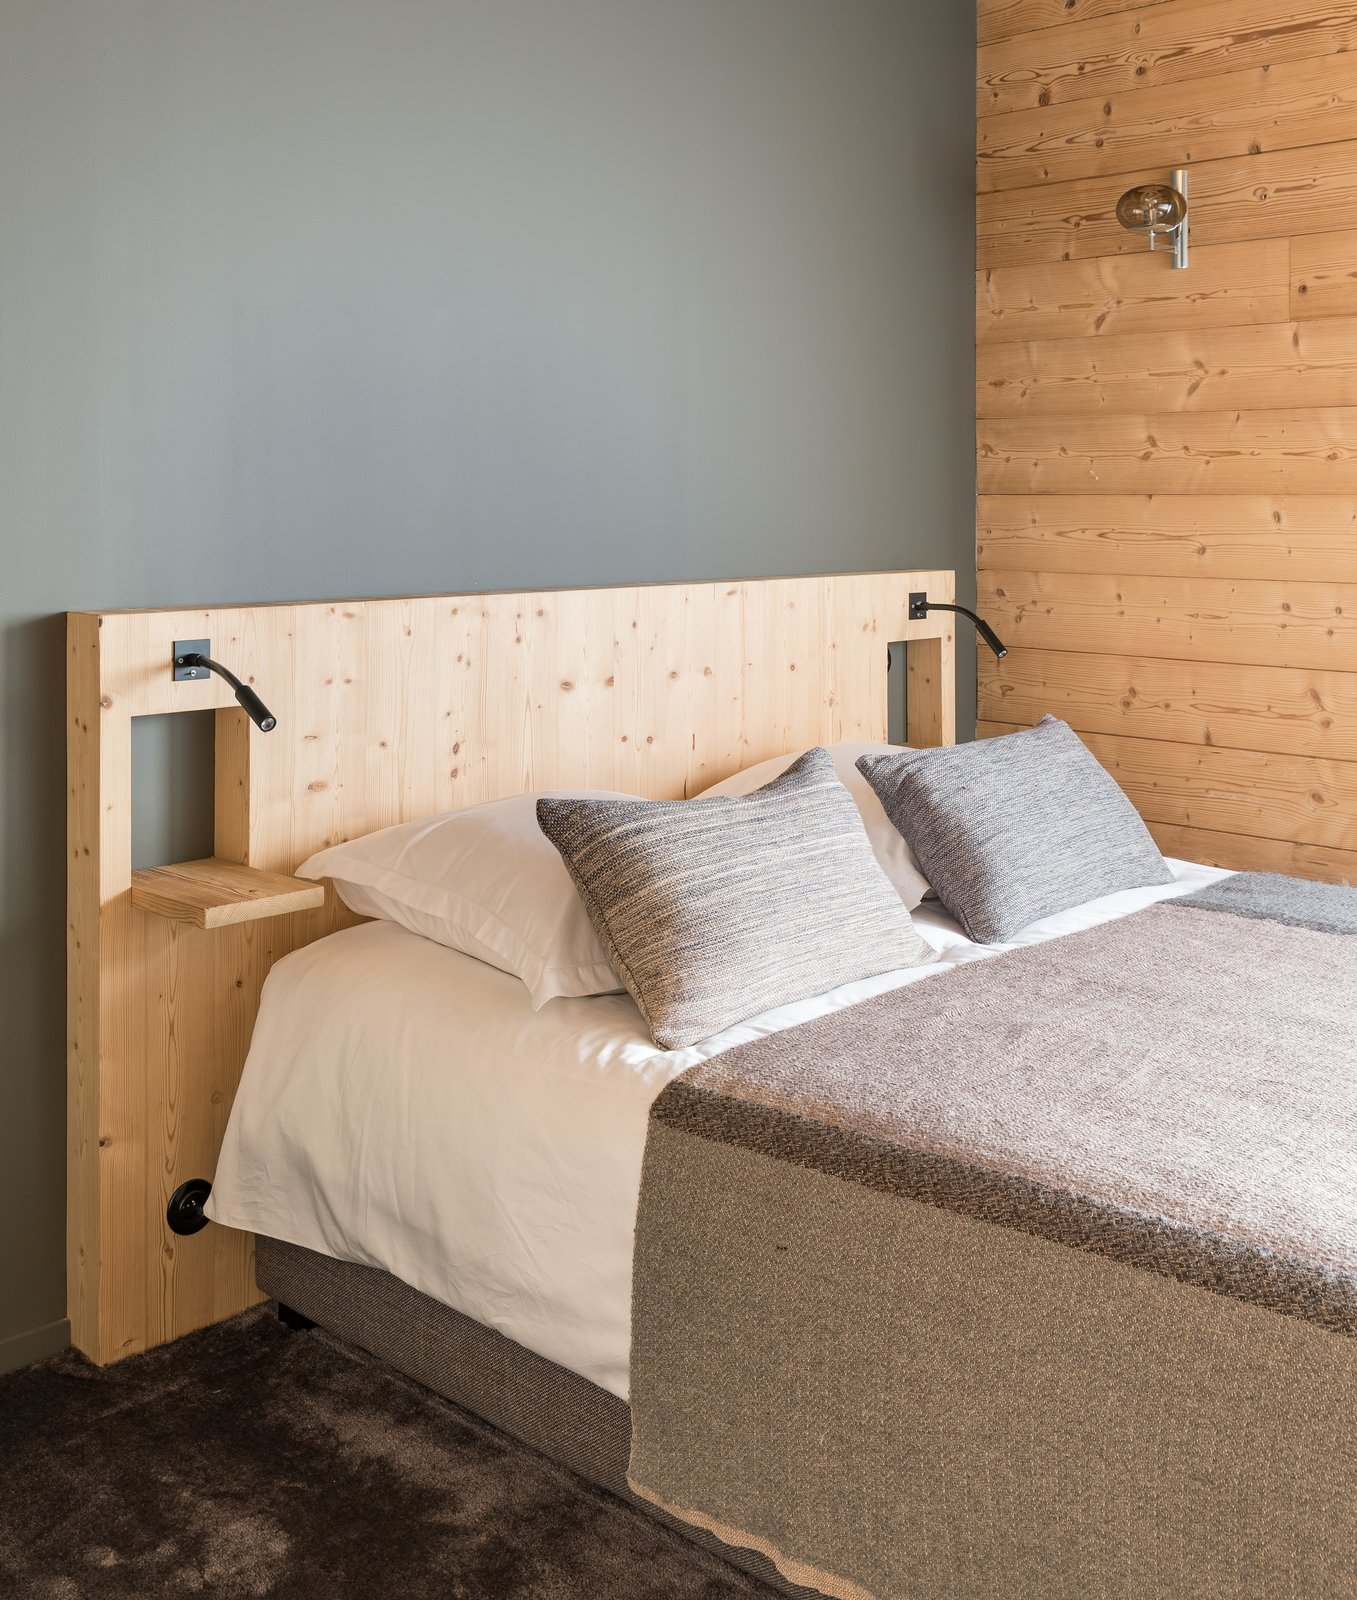 Bedroom, Wall Lighting, Bed, and Carpet Floor  Mountain House